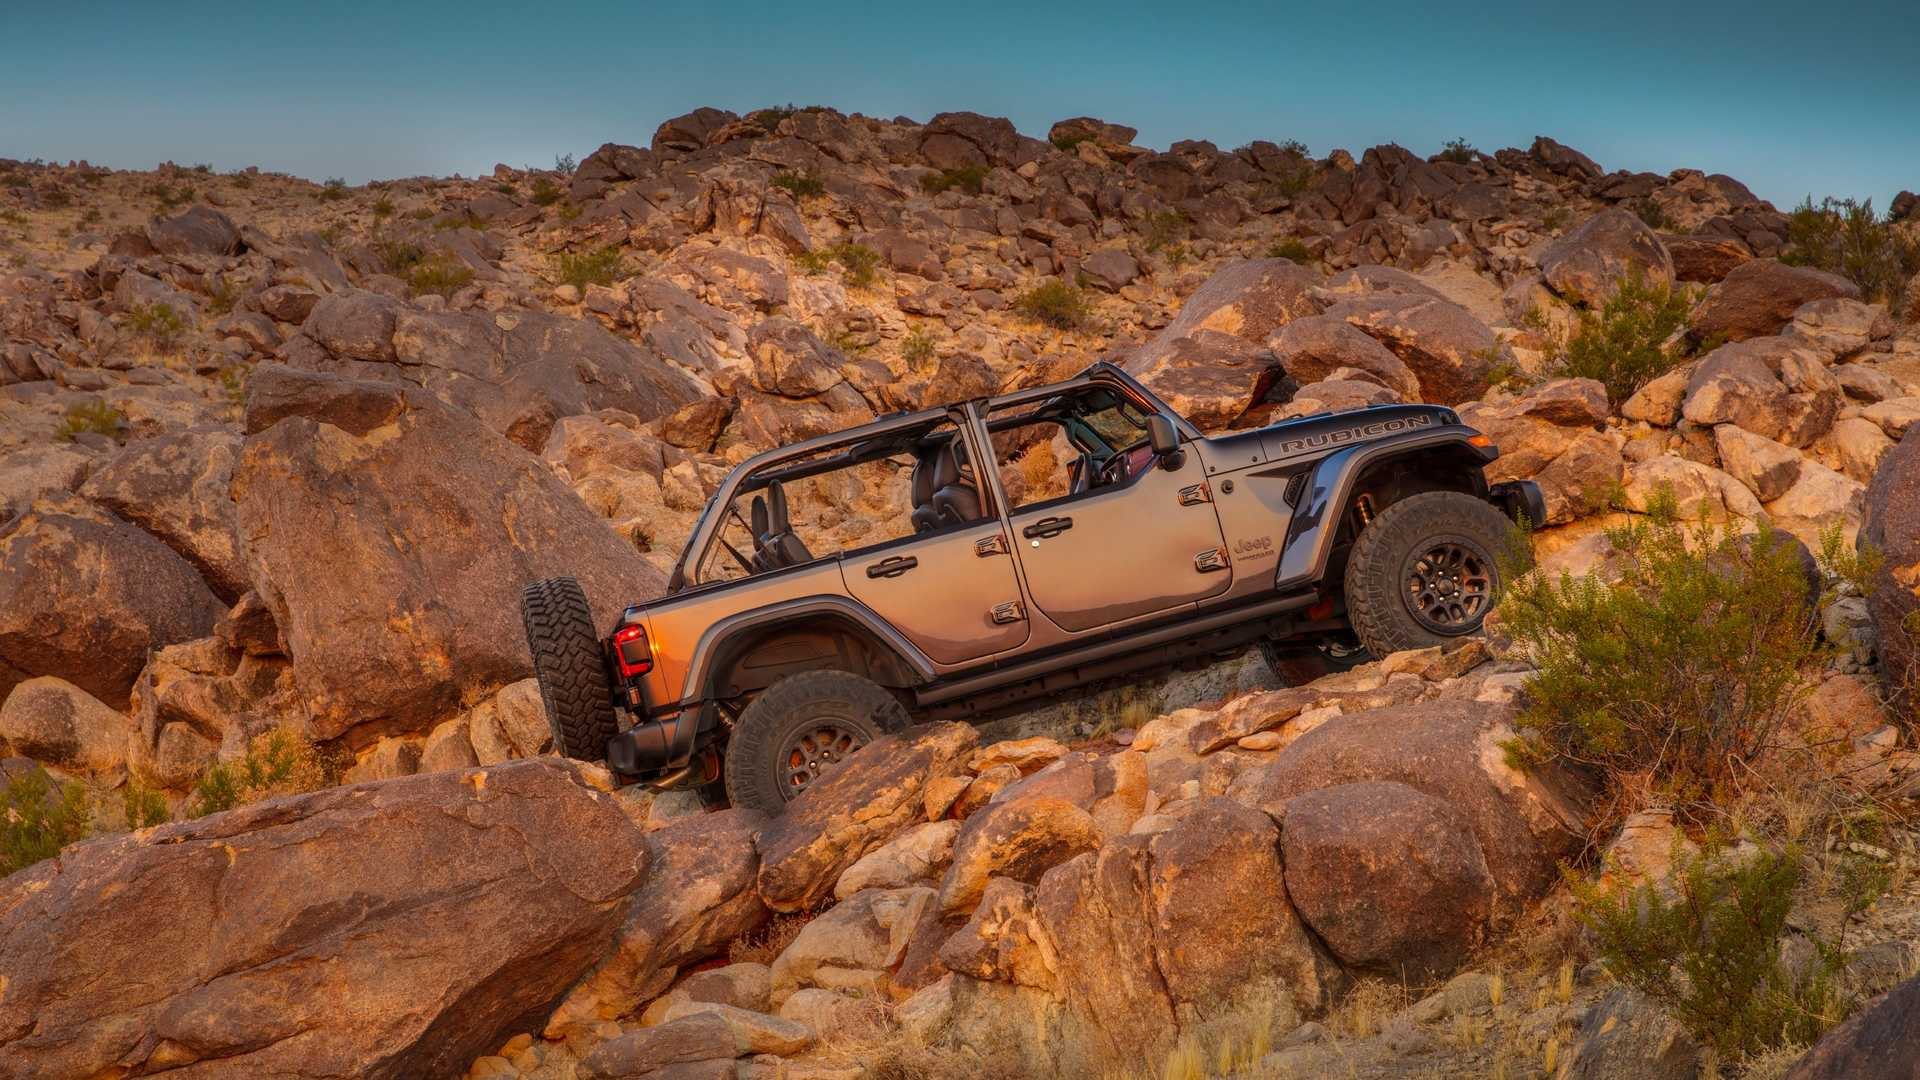 2021-jeep-wrangler-rubicon-392-side-view-9